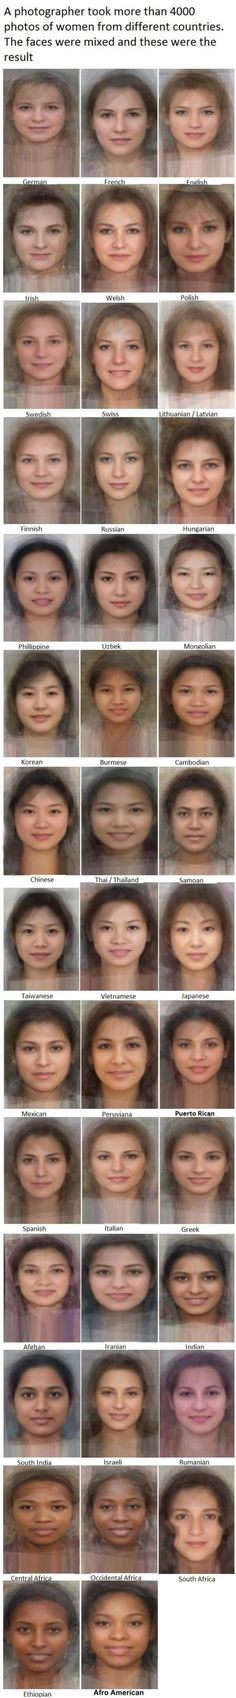 Photographer's Project to Find the Average Face of Women from Each Country...These final portraits are definitely beautiful, the average woman is stunning!